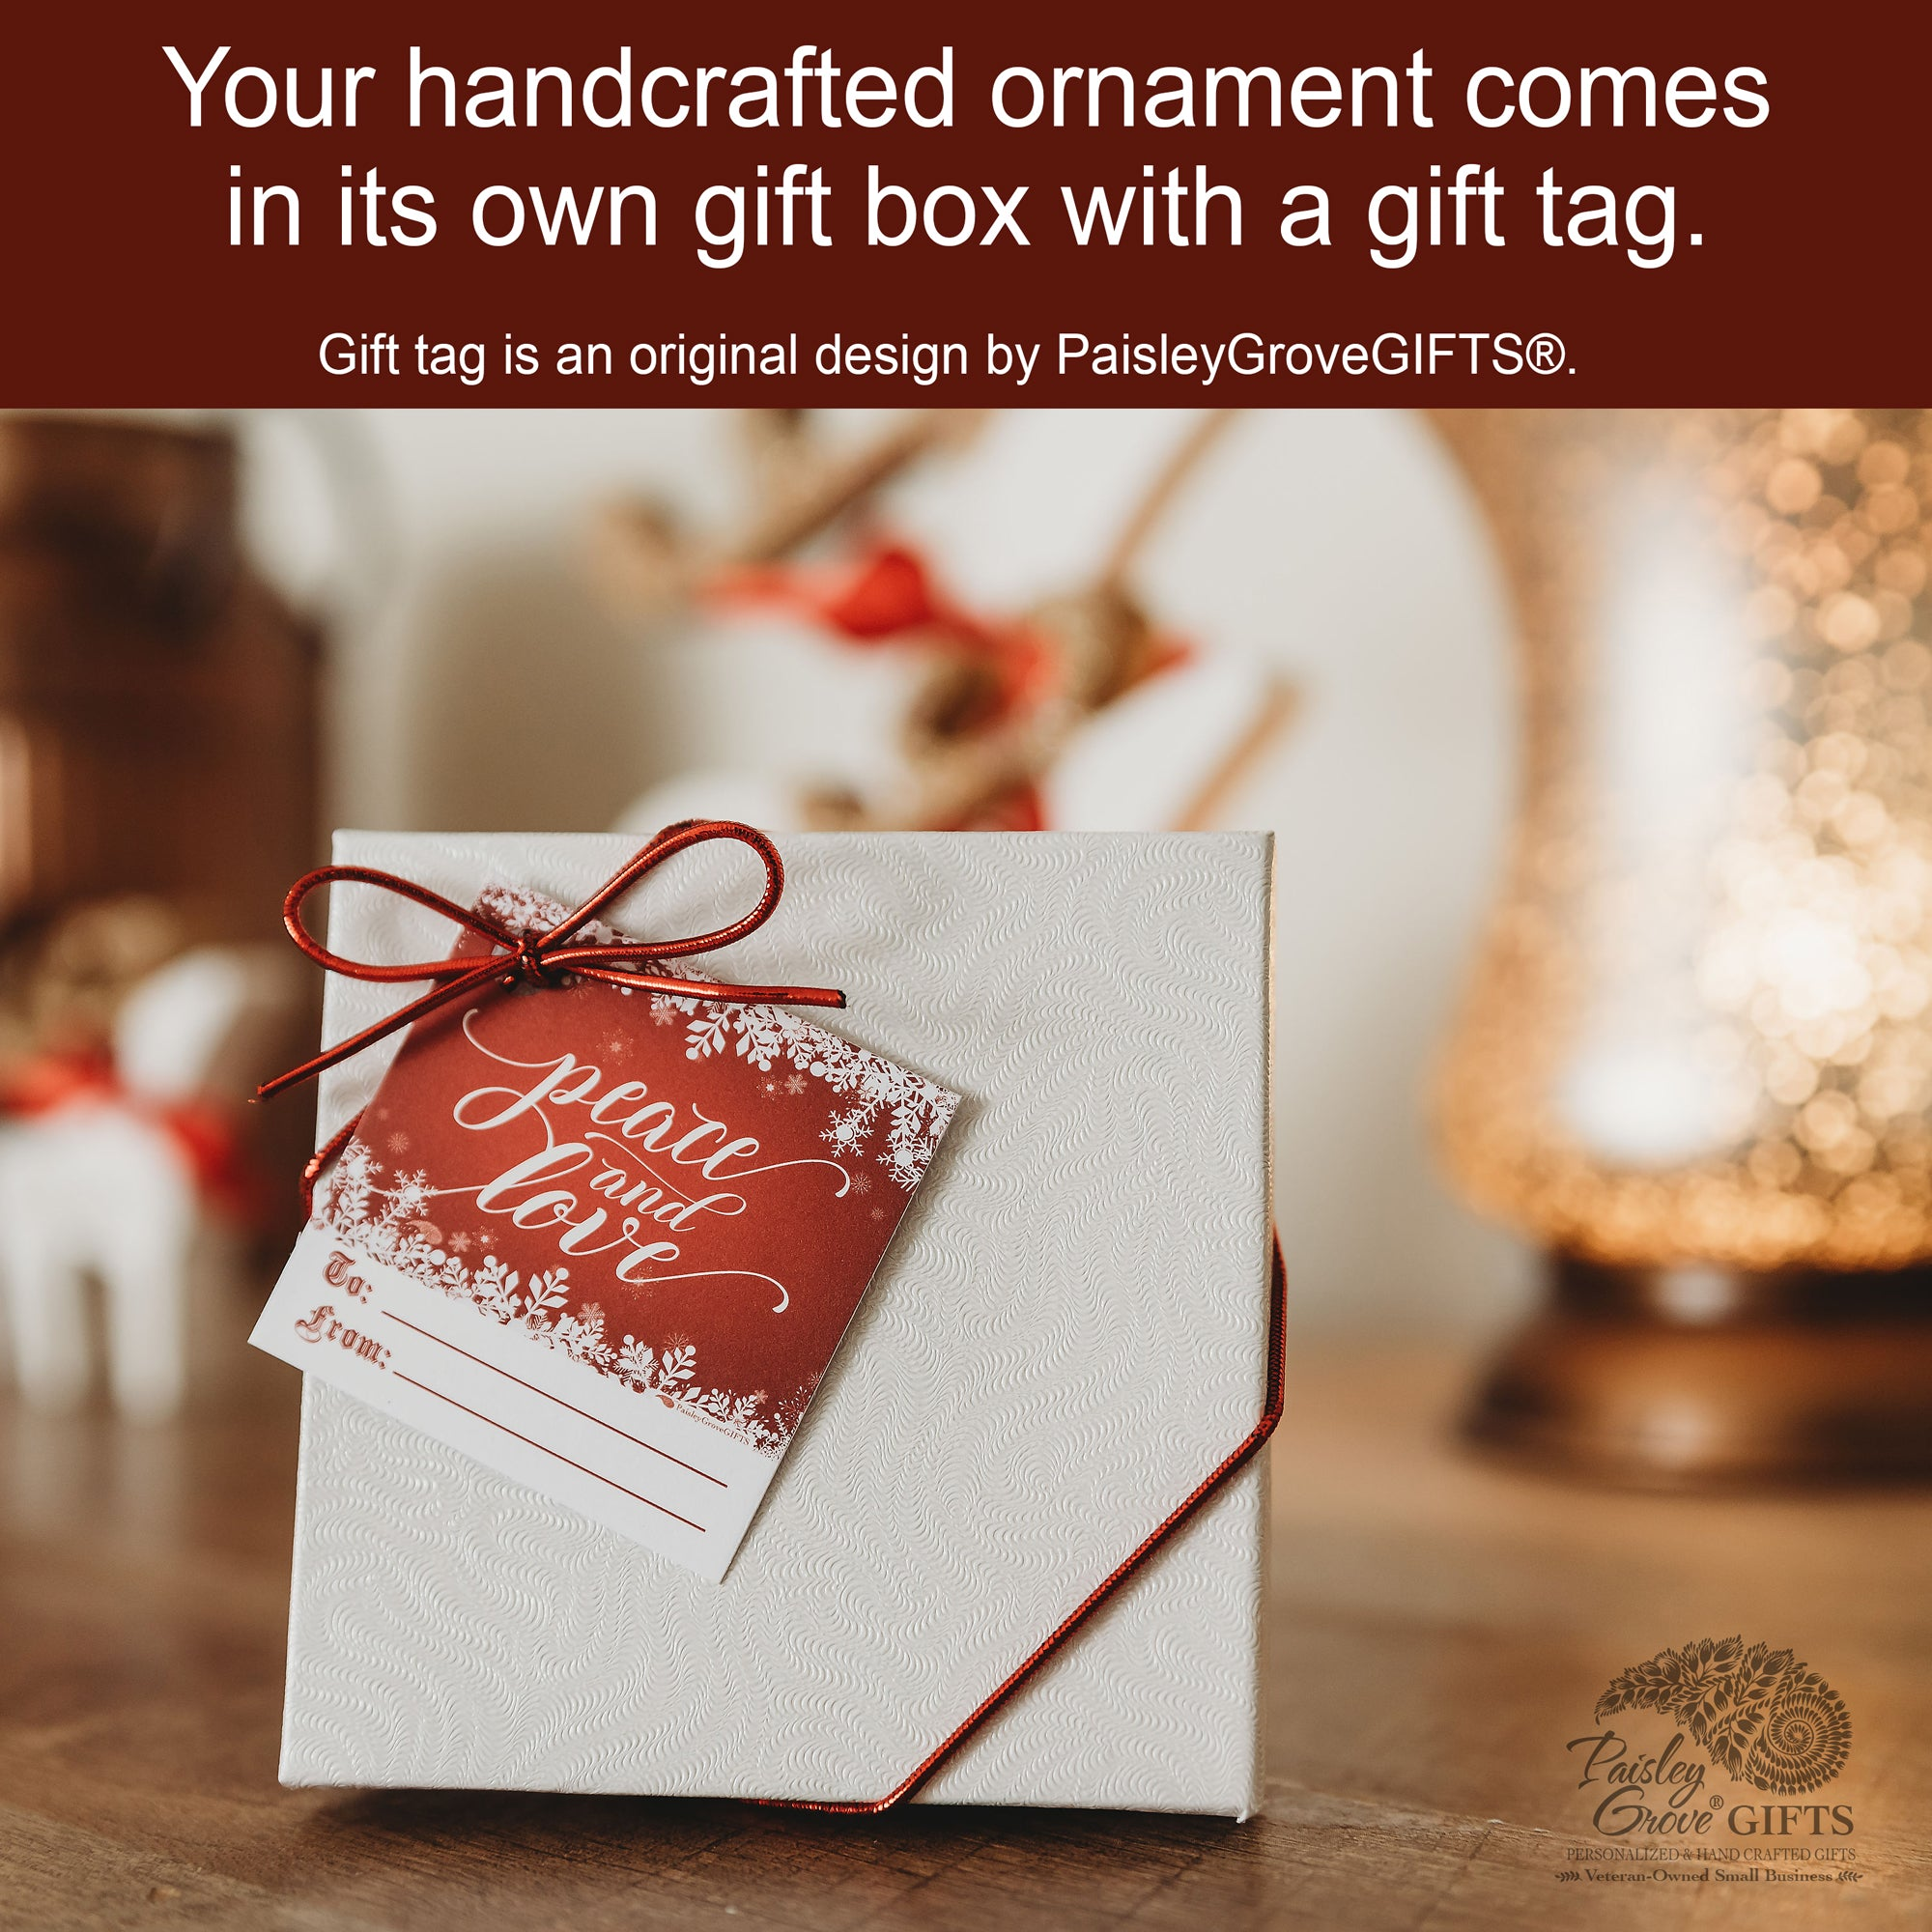 Copyright PaisleyGroveGIFTS S525b Unique Christmas Ornament 2020 includes keepsake gift box with gift tag